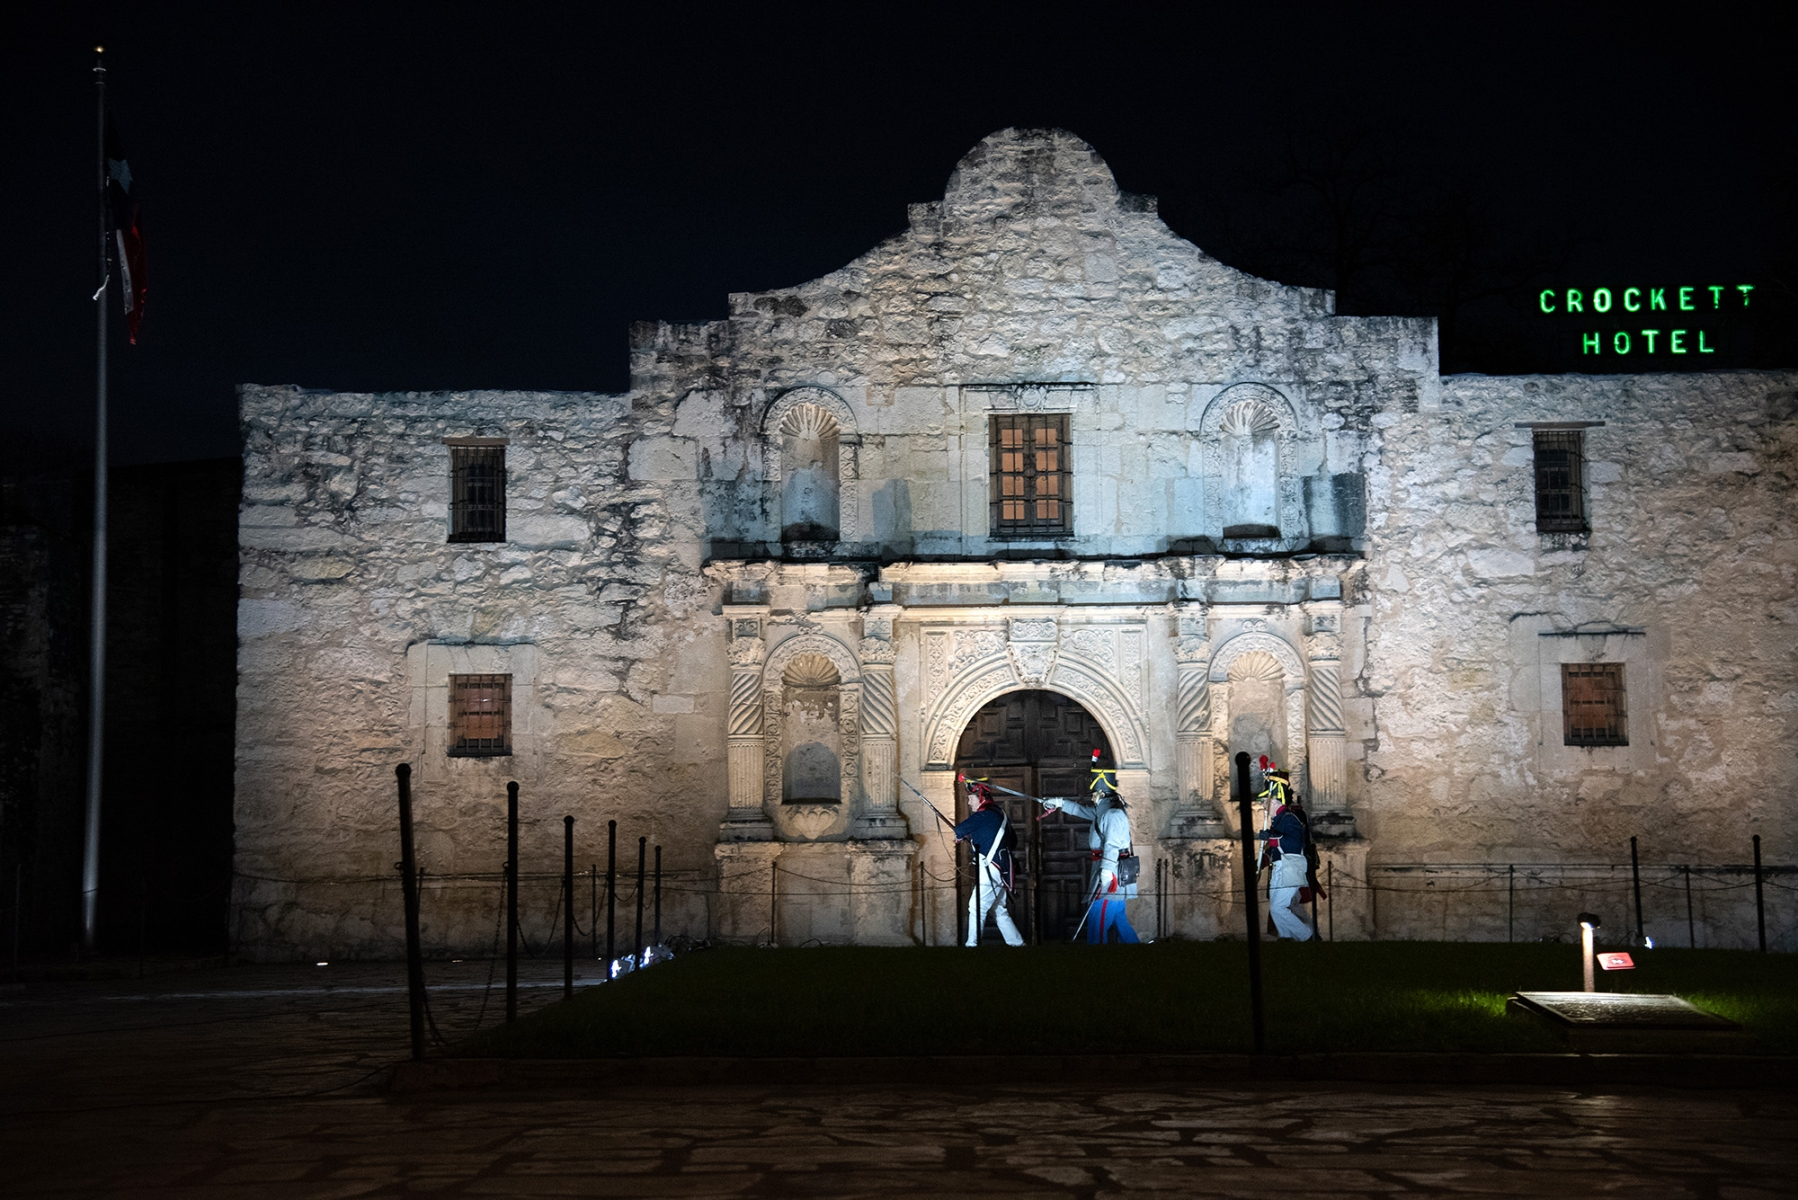 Individuals portraying Gen. Santa Anna's men re-enact their march towards the north wall of the Alamo during the Dawn at the Alamo ceremony March 6, 2019, at Alamo Plaza.